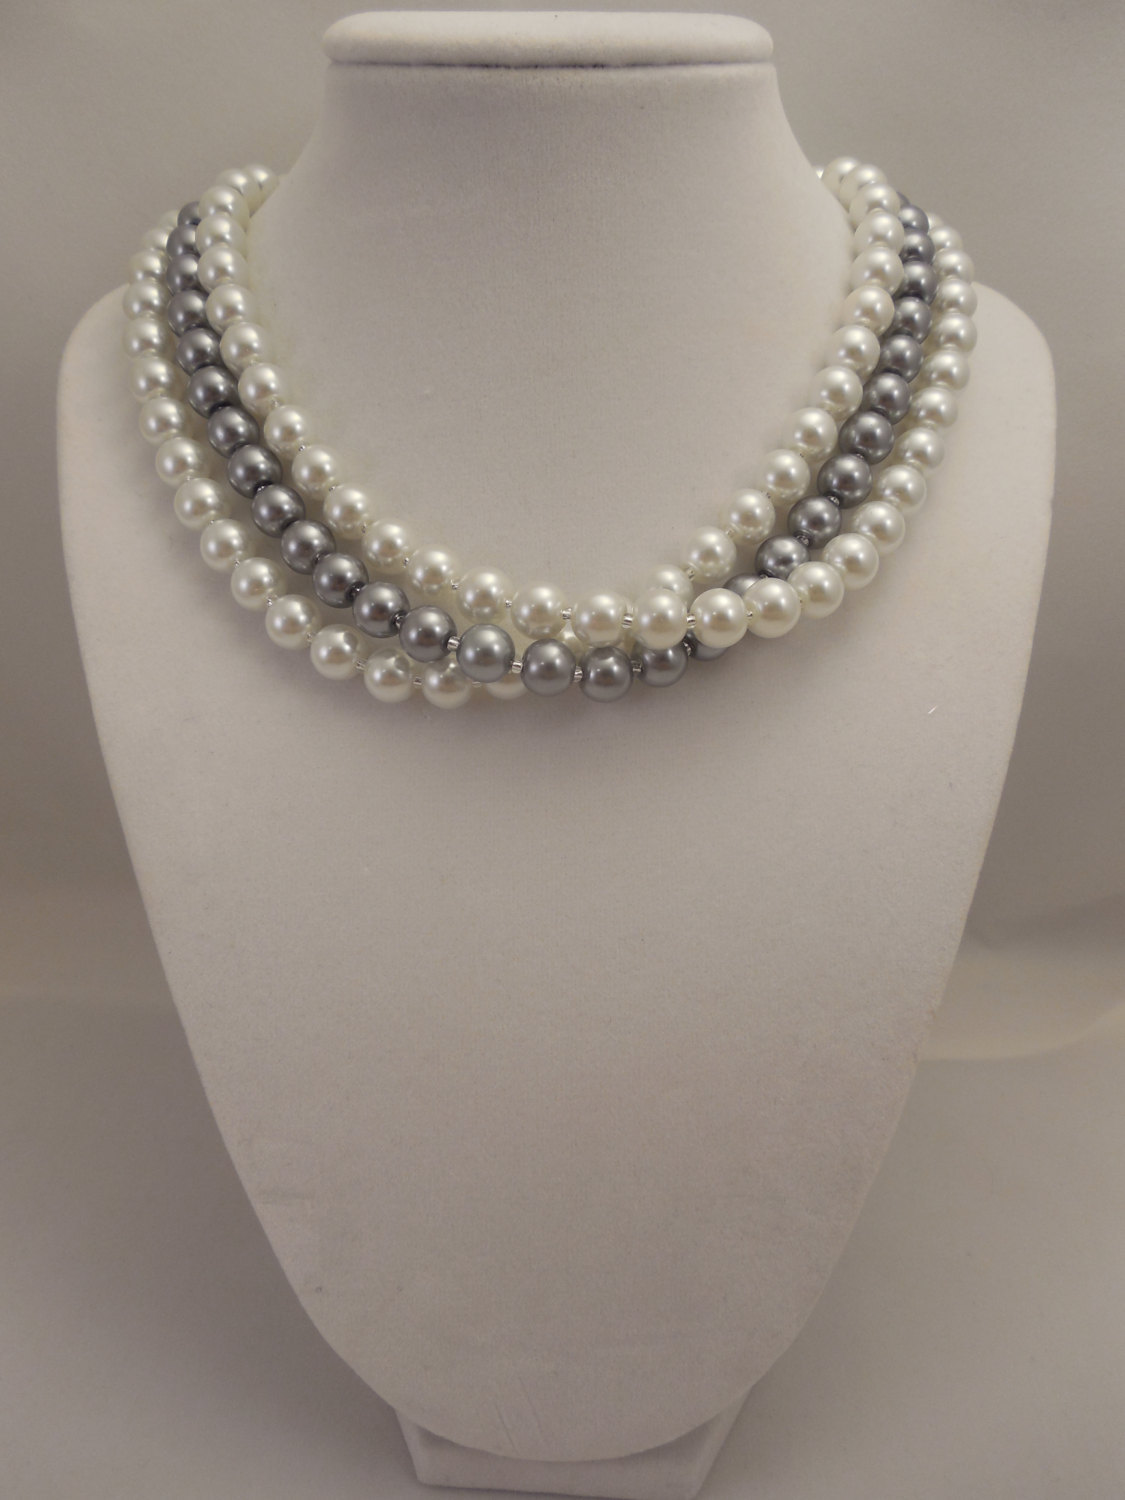 Primary image for Elegant, Three Strand, Half Twisted Necklace with 8mm White & Gray Glass Pearls